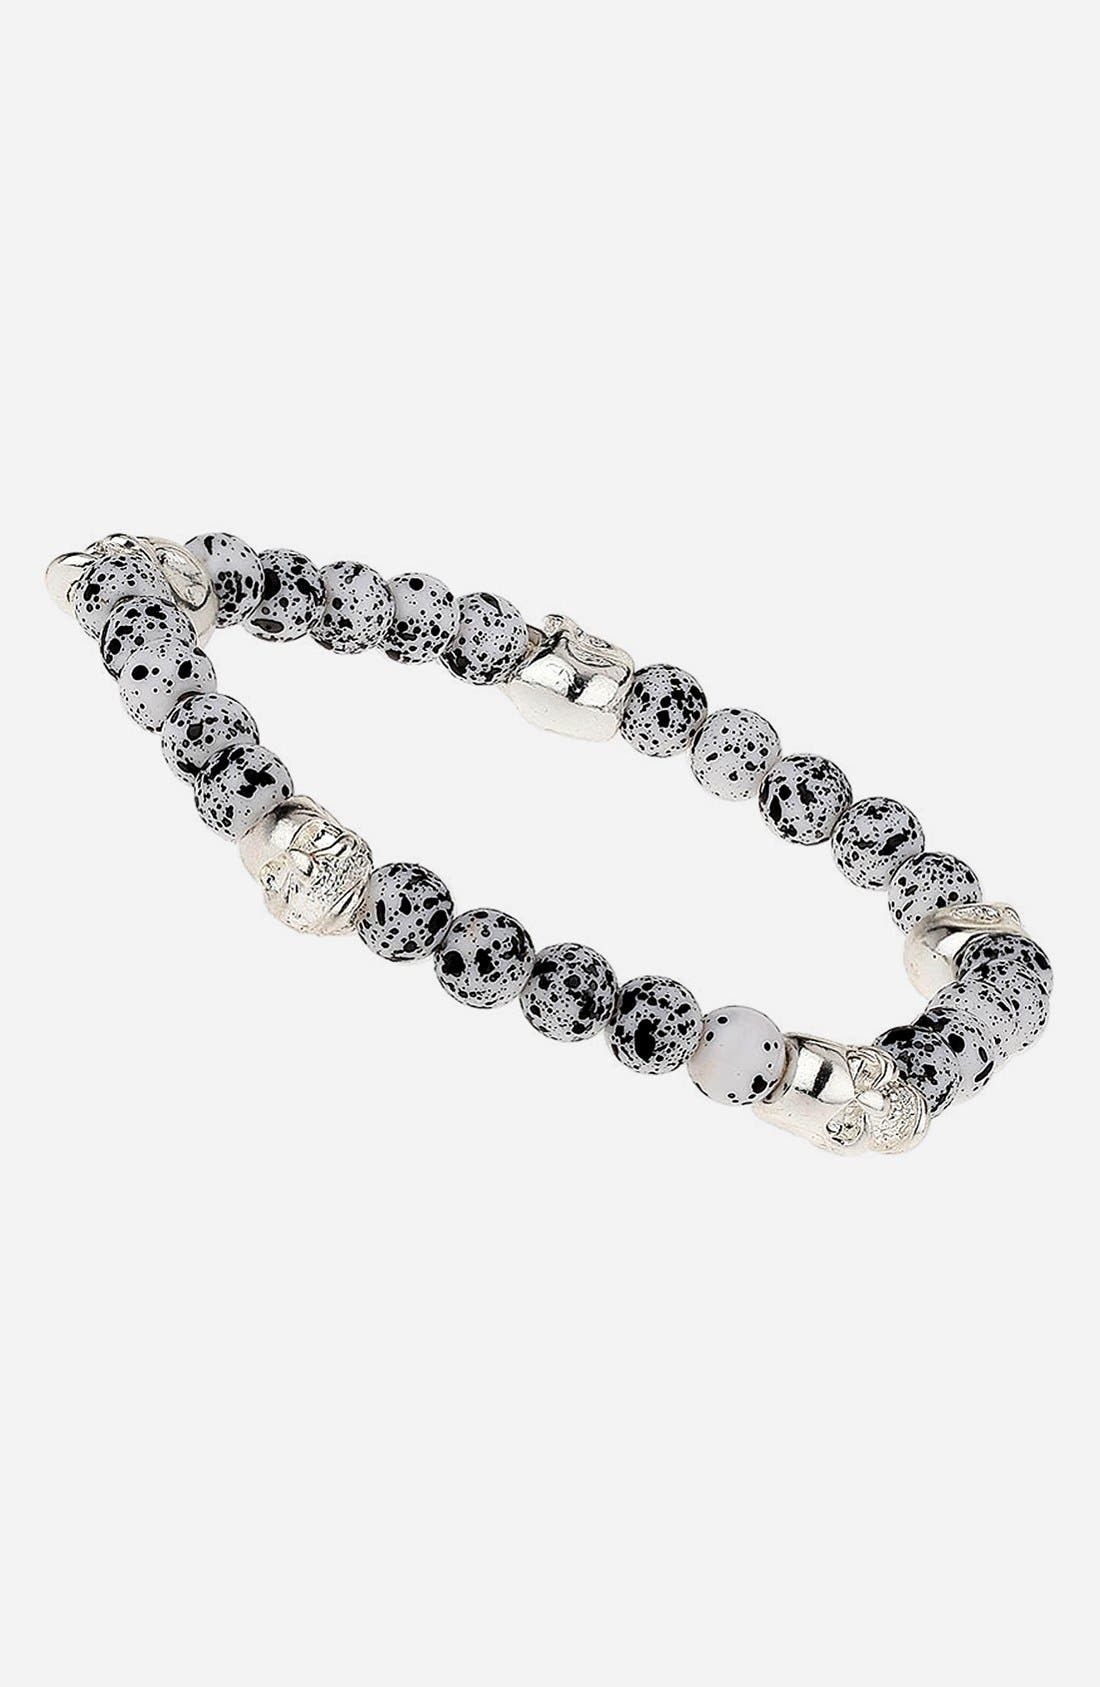 Alternate Image 1 Selected - Topman Skull & Stone Bead Stretch Bracelet